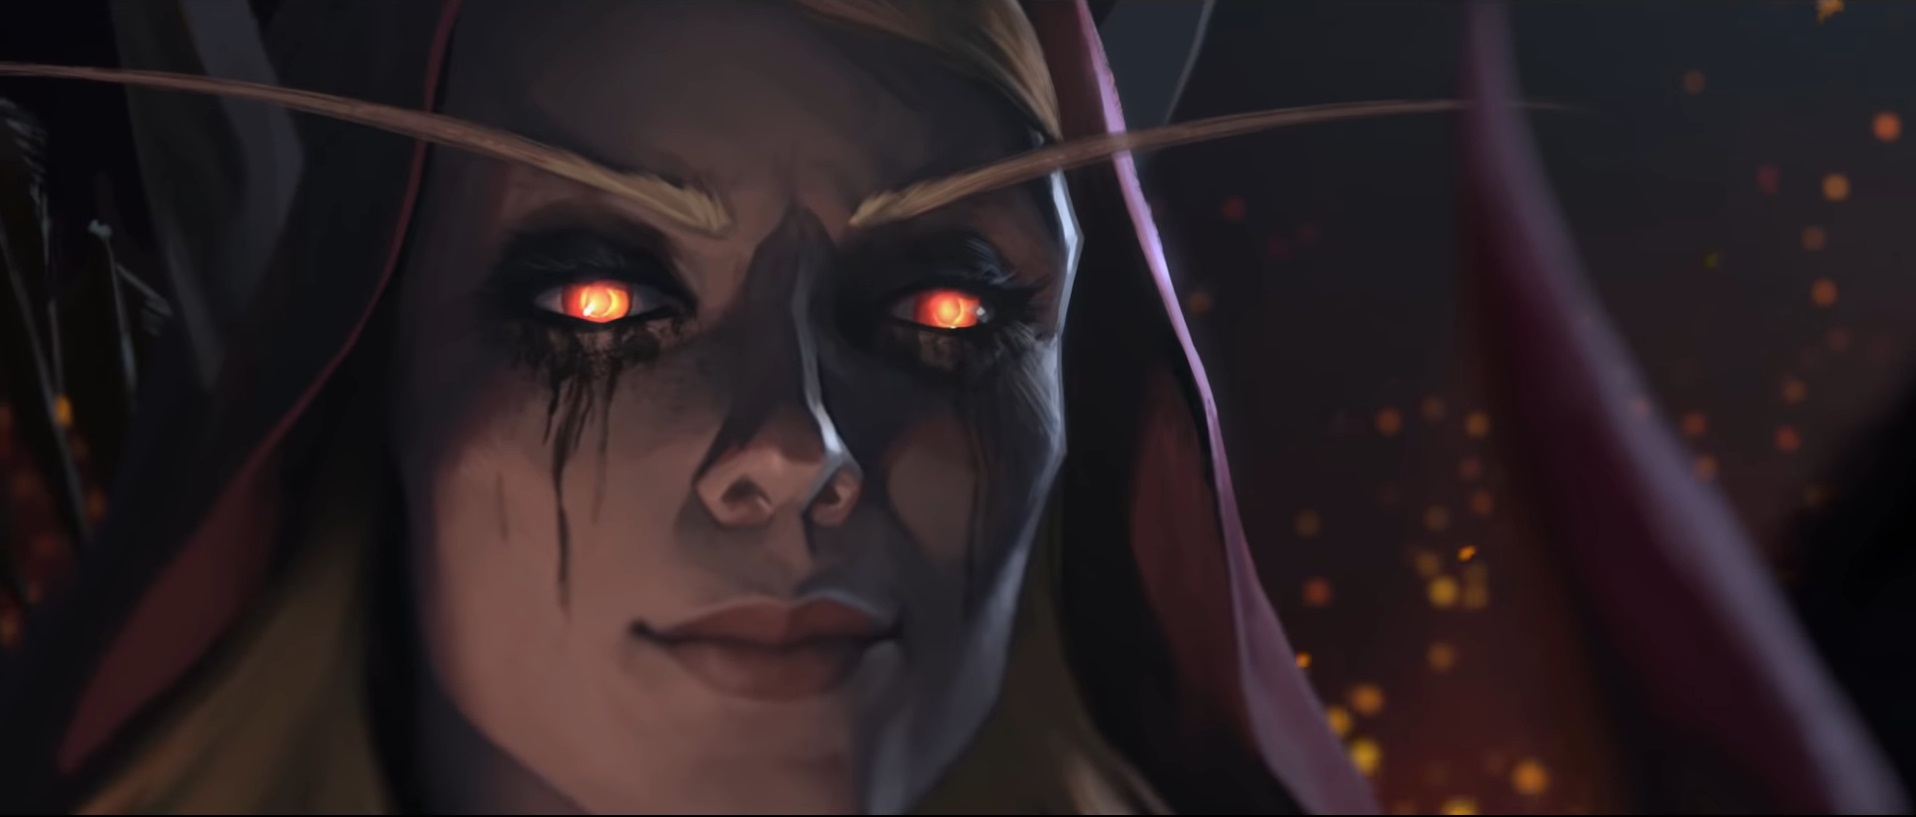 WoW Sylvanas Warbringer Screen 4